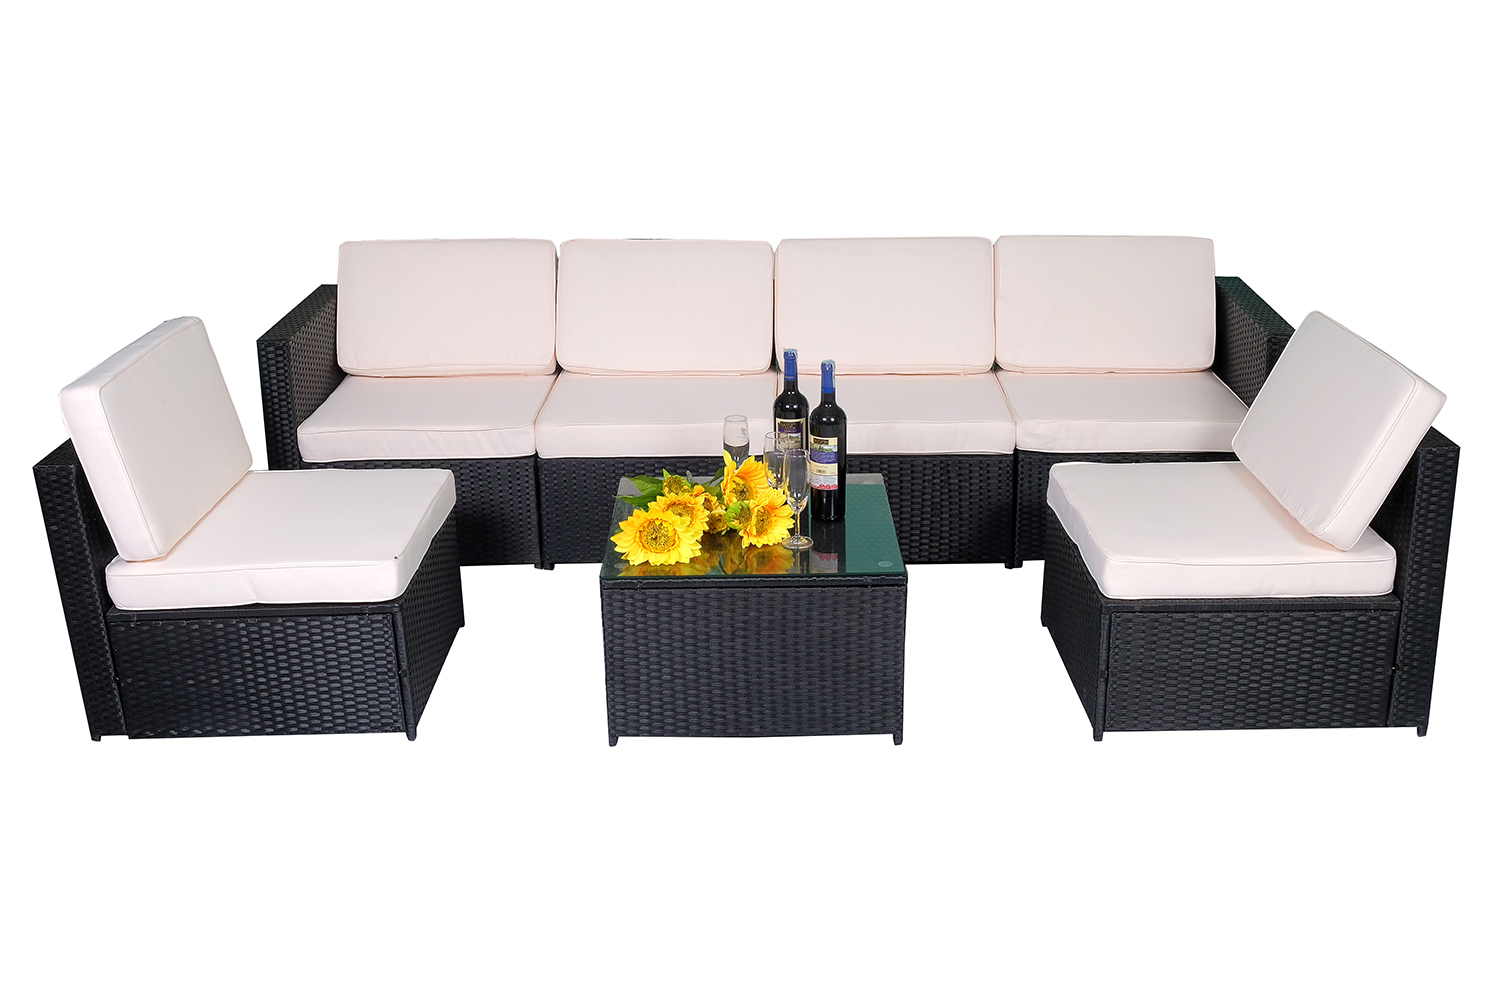 mcombo 14tlg poly rattan gartenm bel sitzgarnitur sitzgruppe sofa ebay. Black Bedroom Furniture Sets. Home Design Ideas